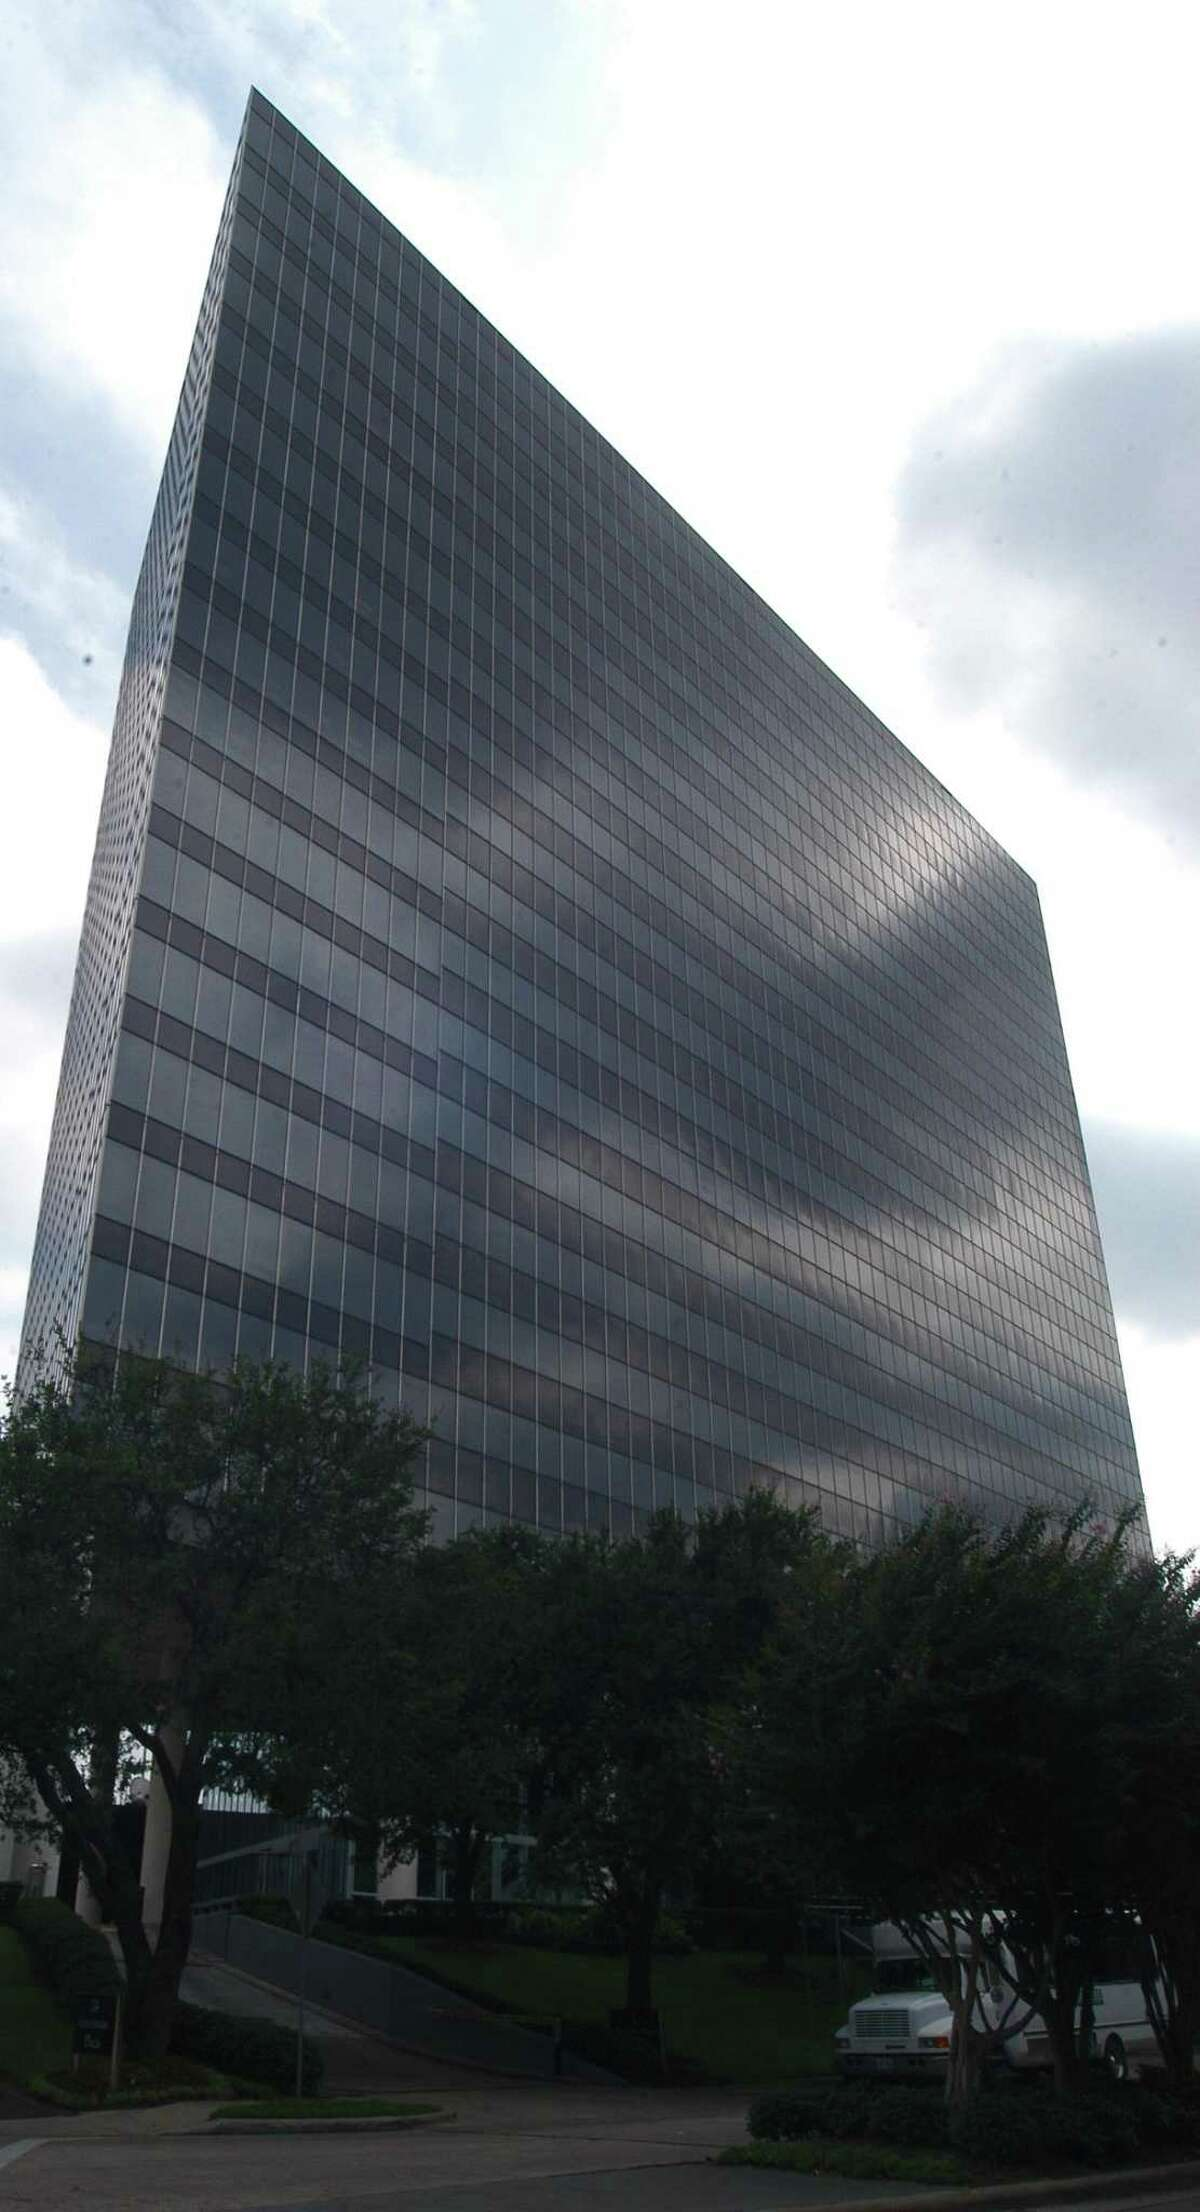 Innovapptive leased 12,905 square feet at Weslayan Tower,